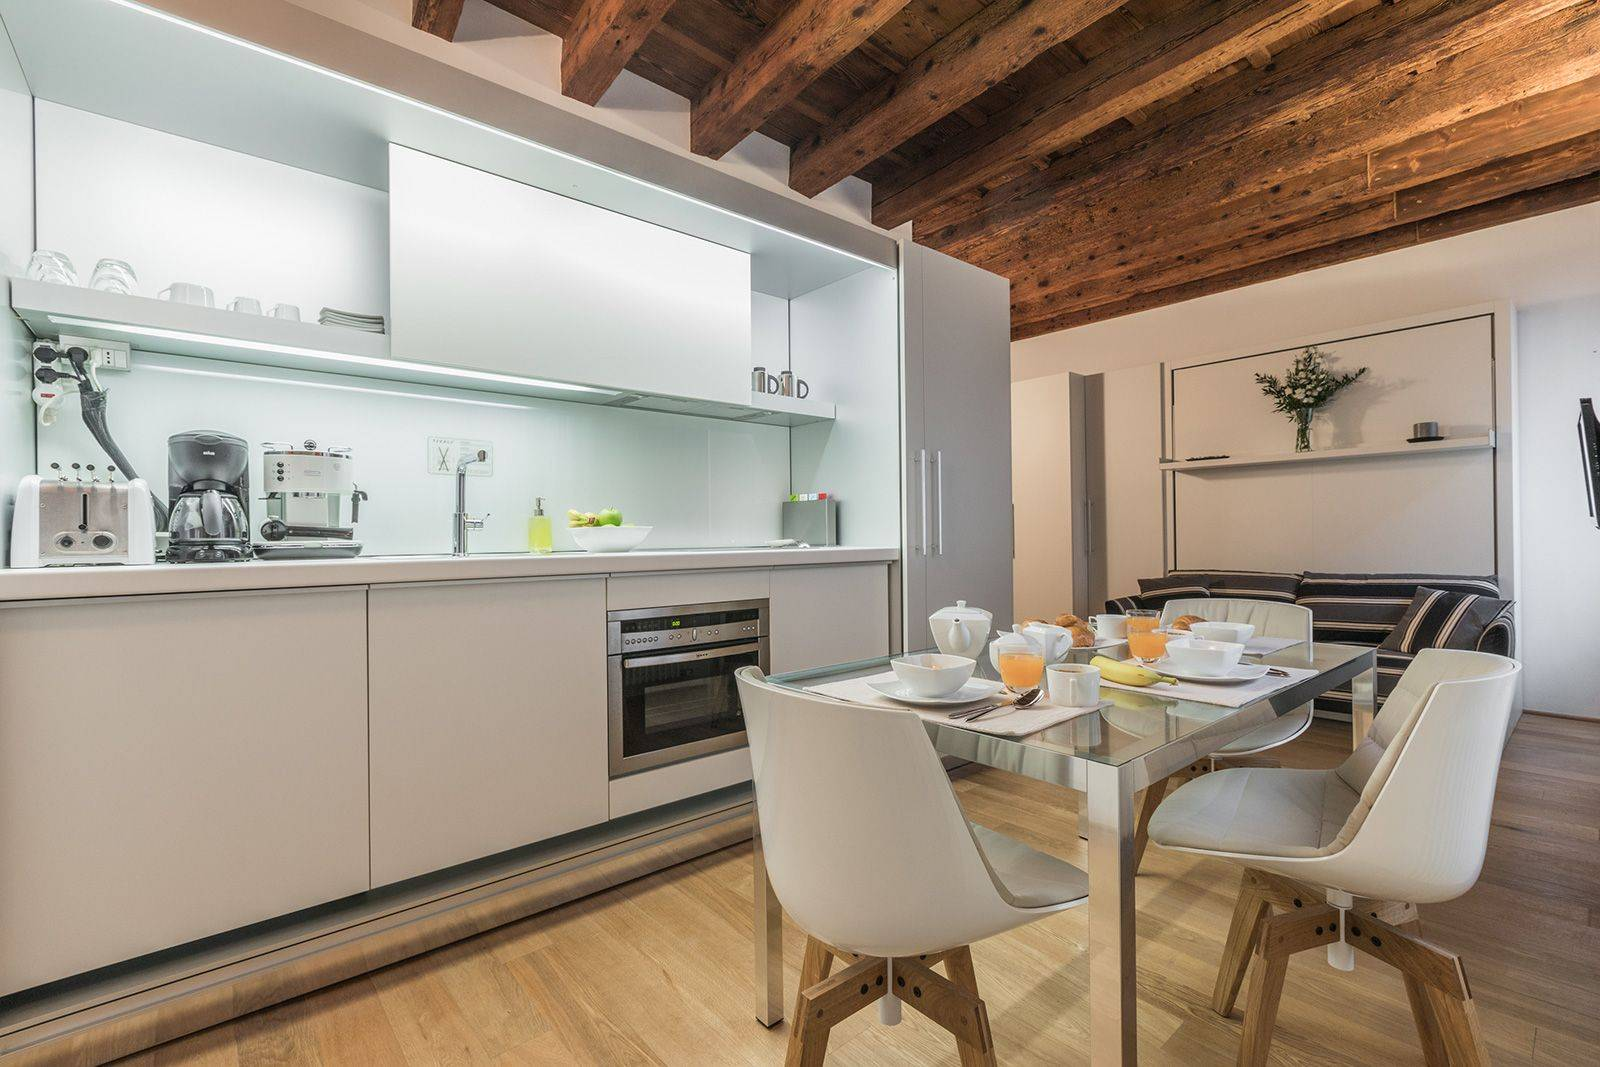 it is a designer apartment with high-tech amenities